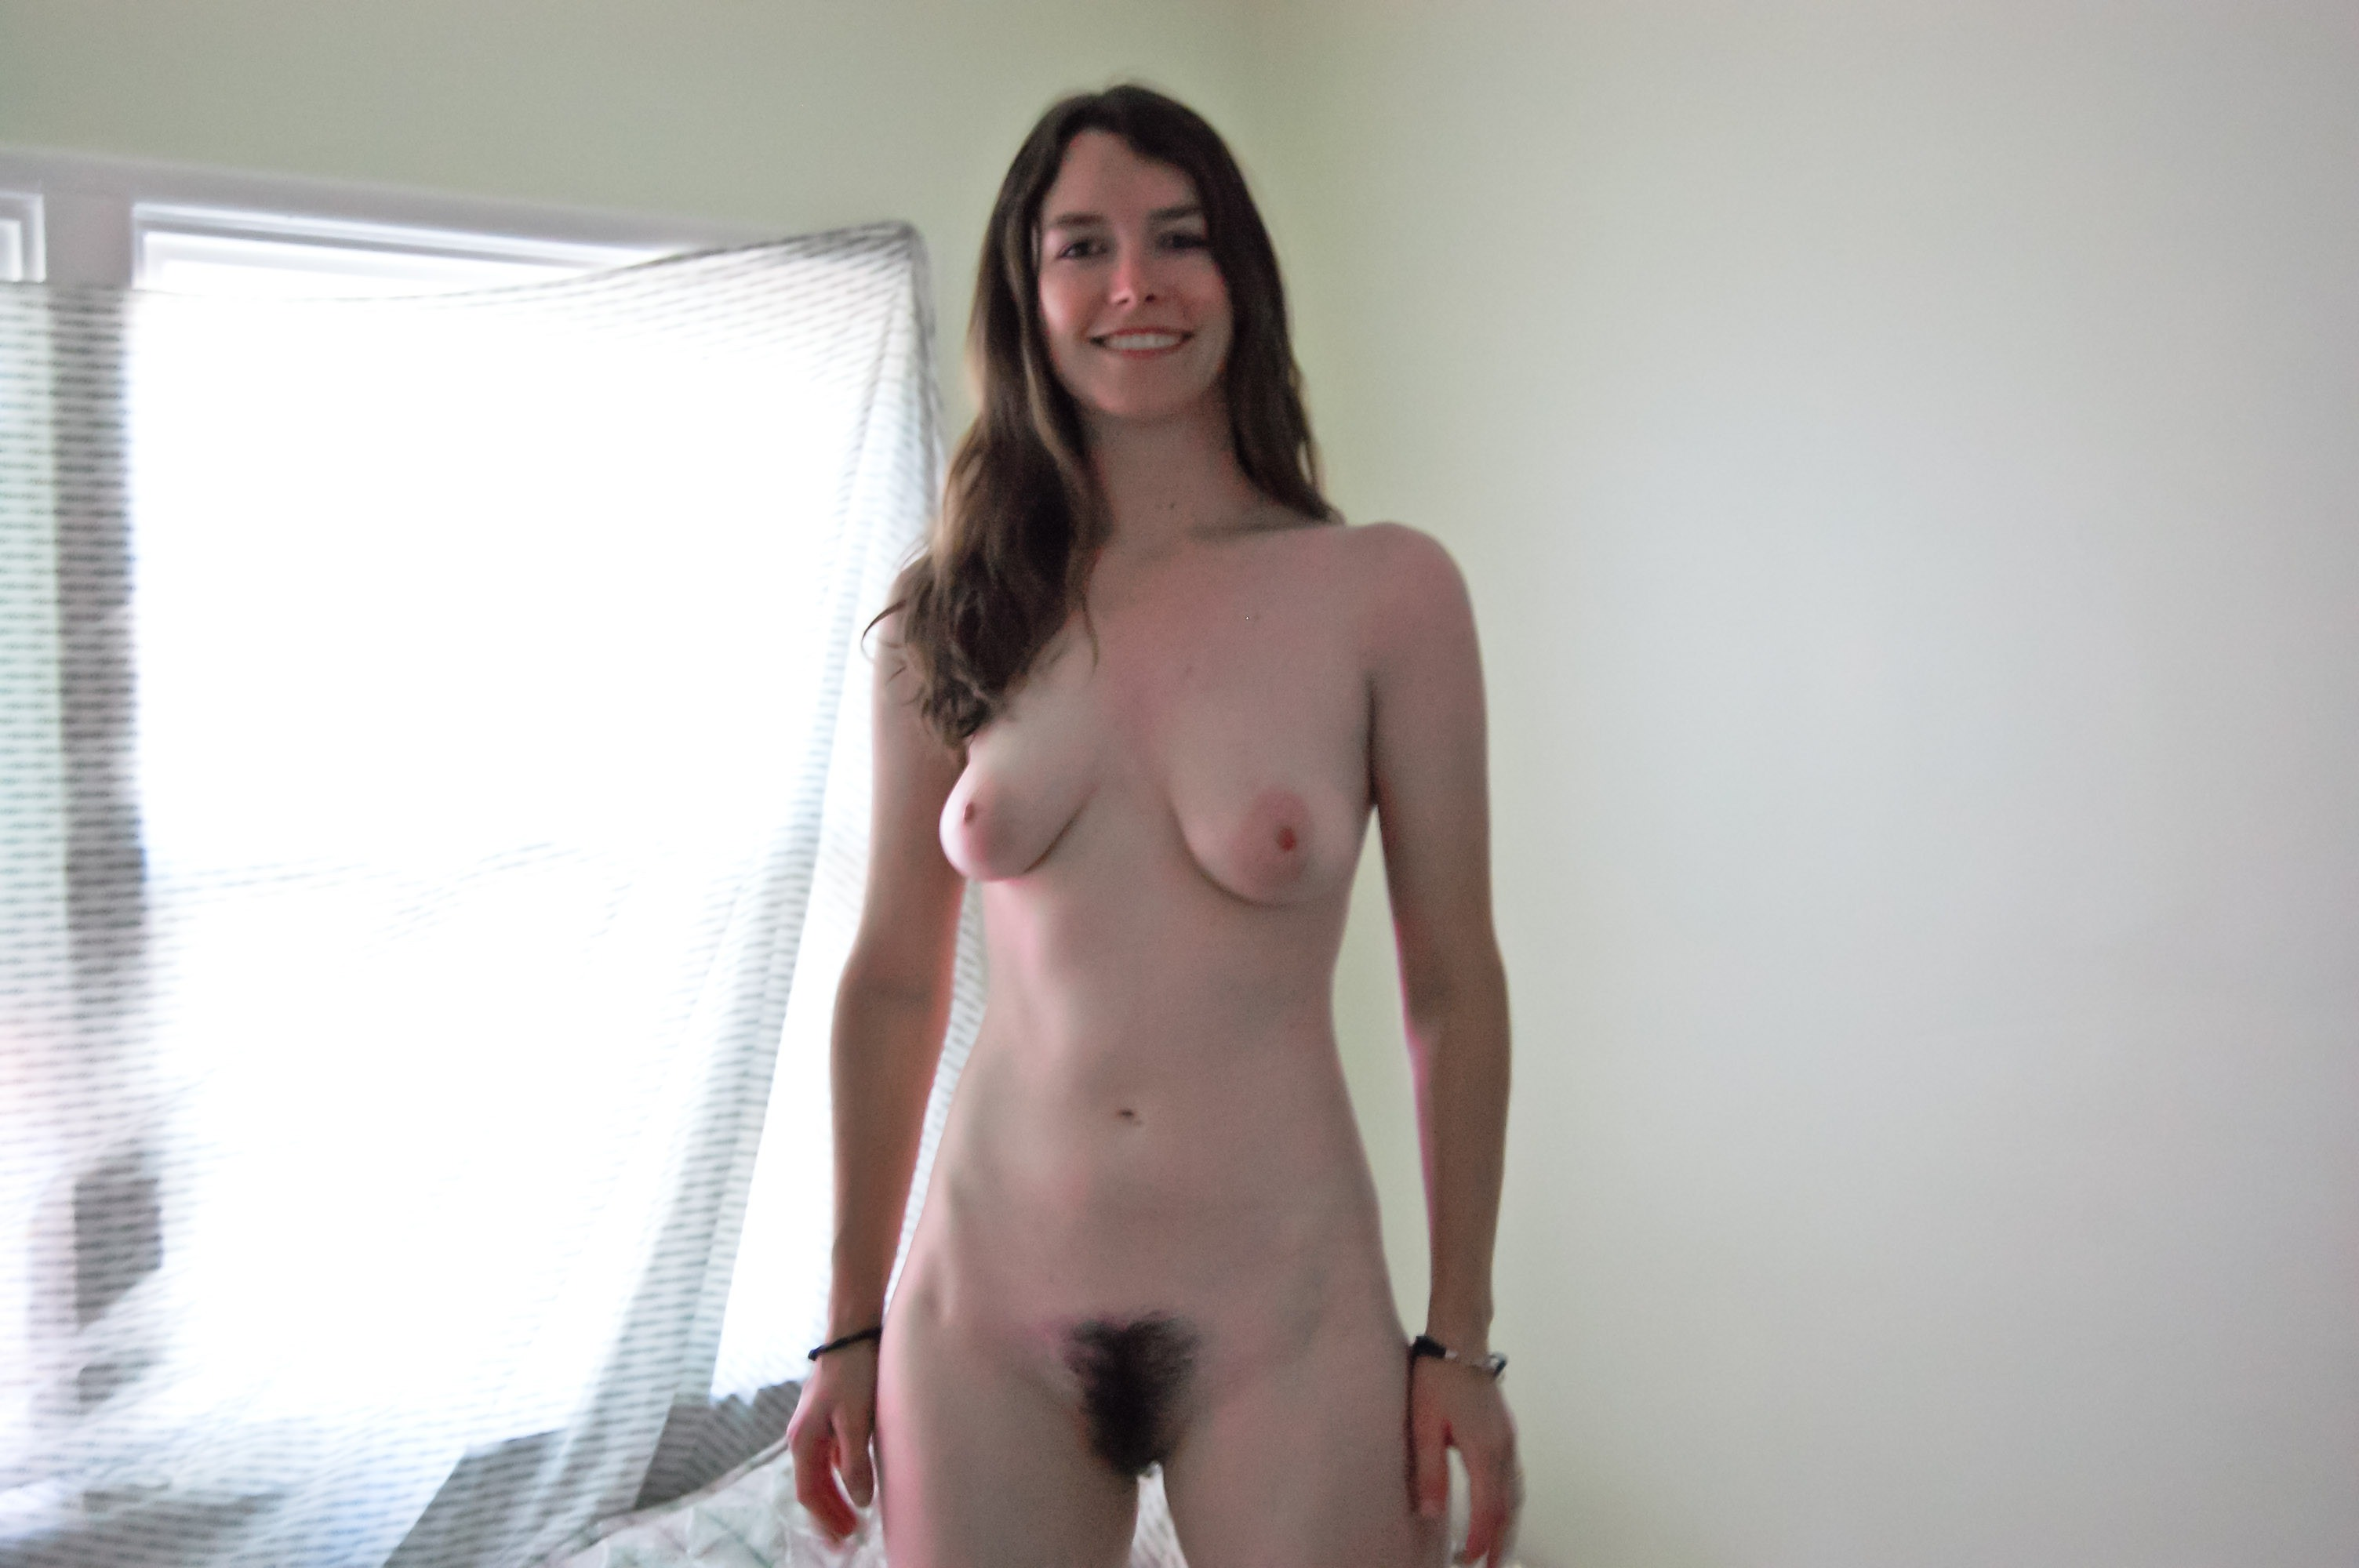 sweater pictures page women in years hot mature #ATKHairy #beautiful #bush #bush #cougar #gorgeous #hairy #hairypussy #hairypussy #hippie #hirsute #hot #mature #milf #milf #mom #mommy #natural #nudist #outdoornudity #pam012 #pamela #pussy #sexy #wife